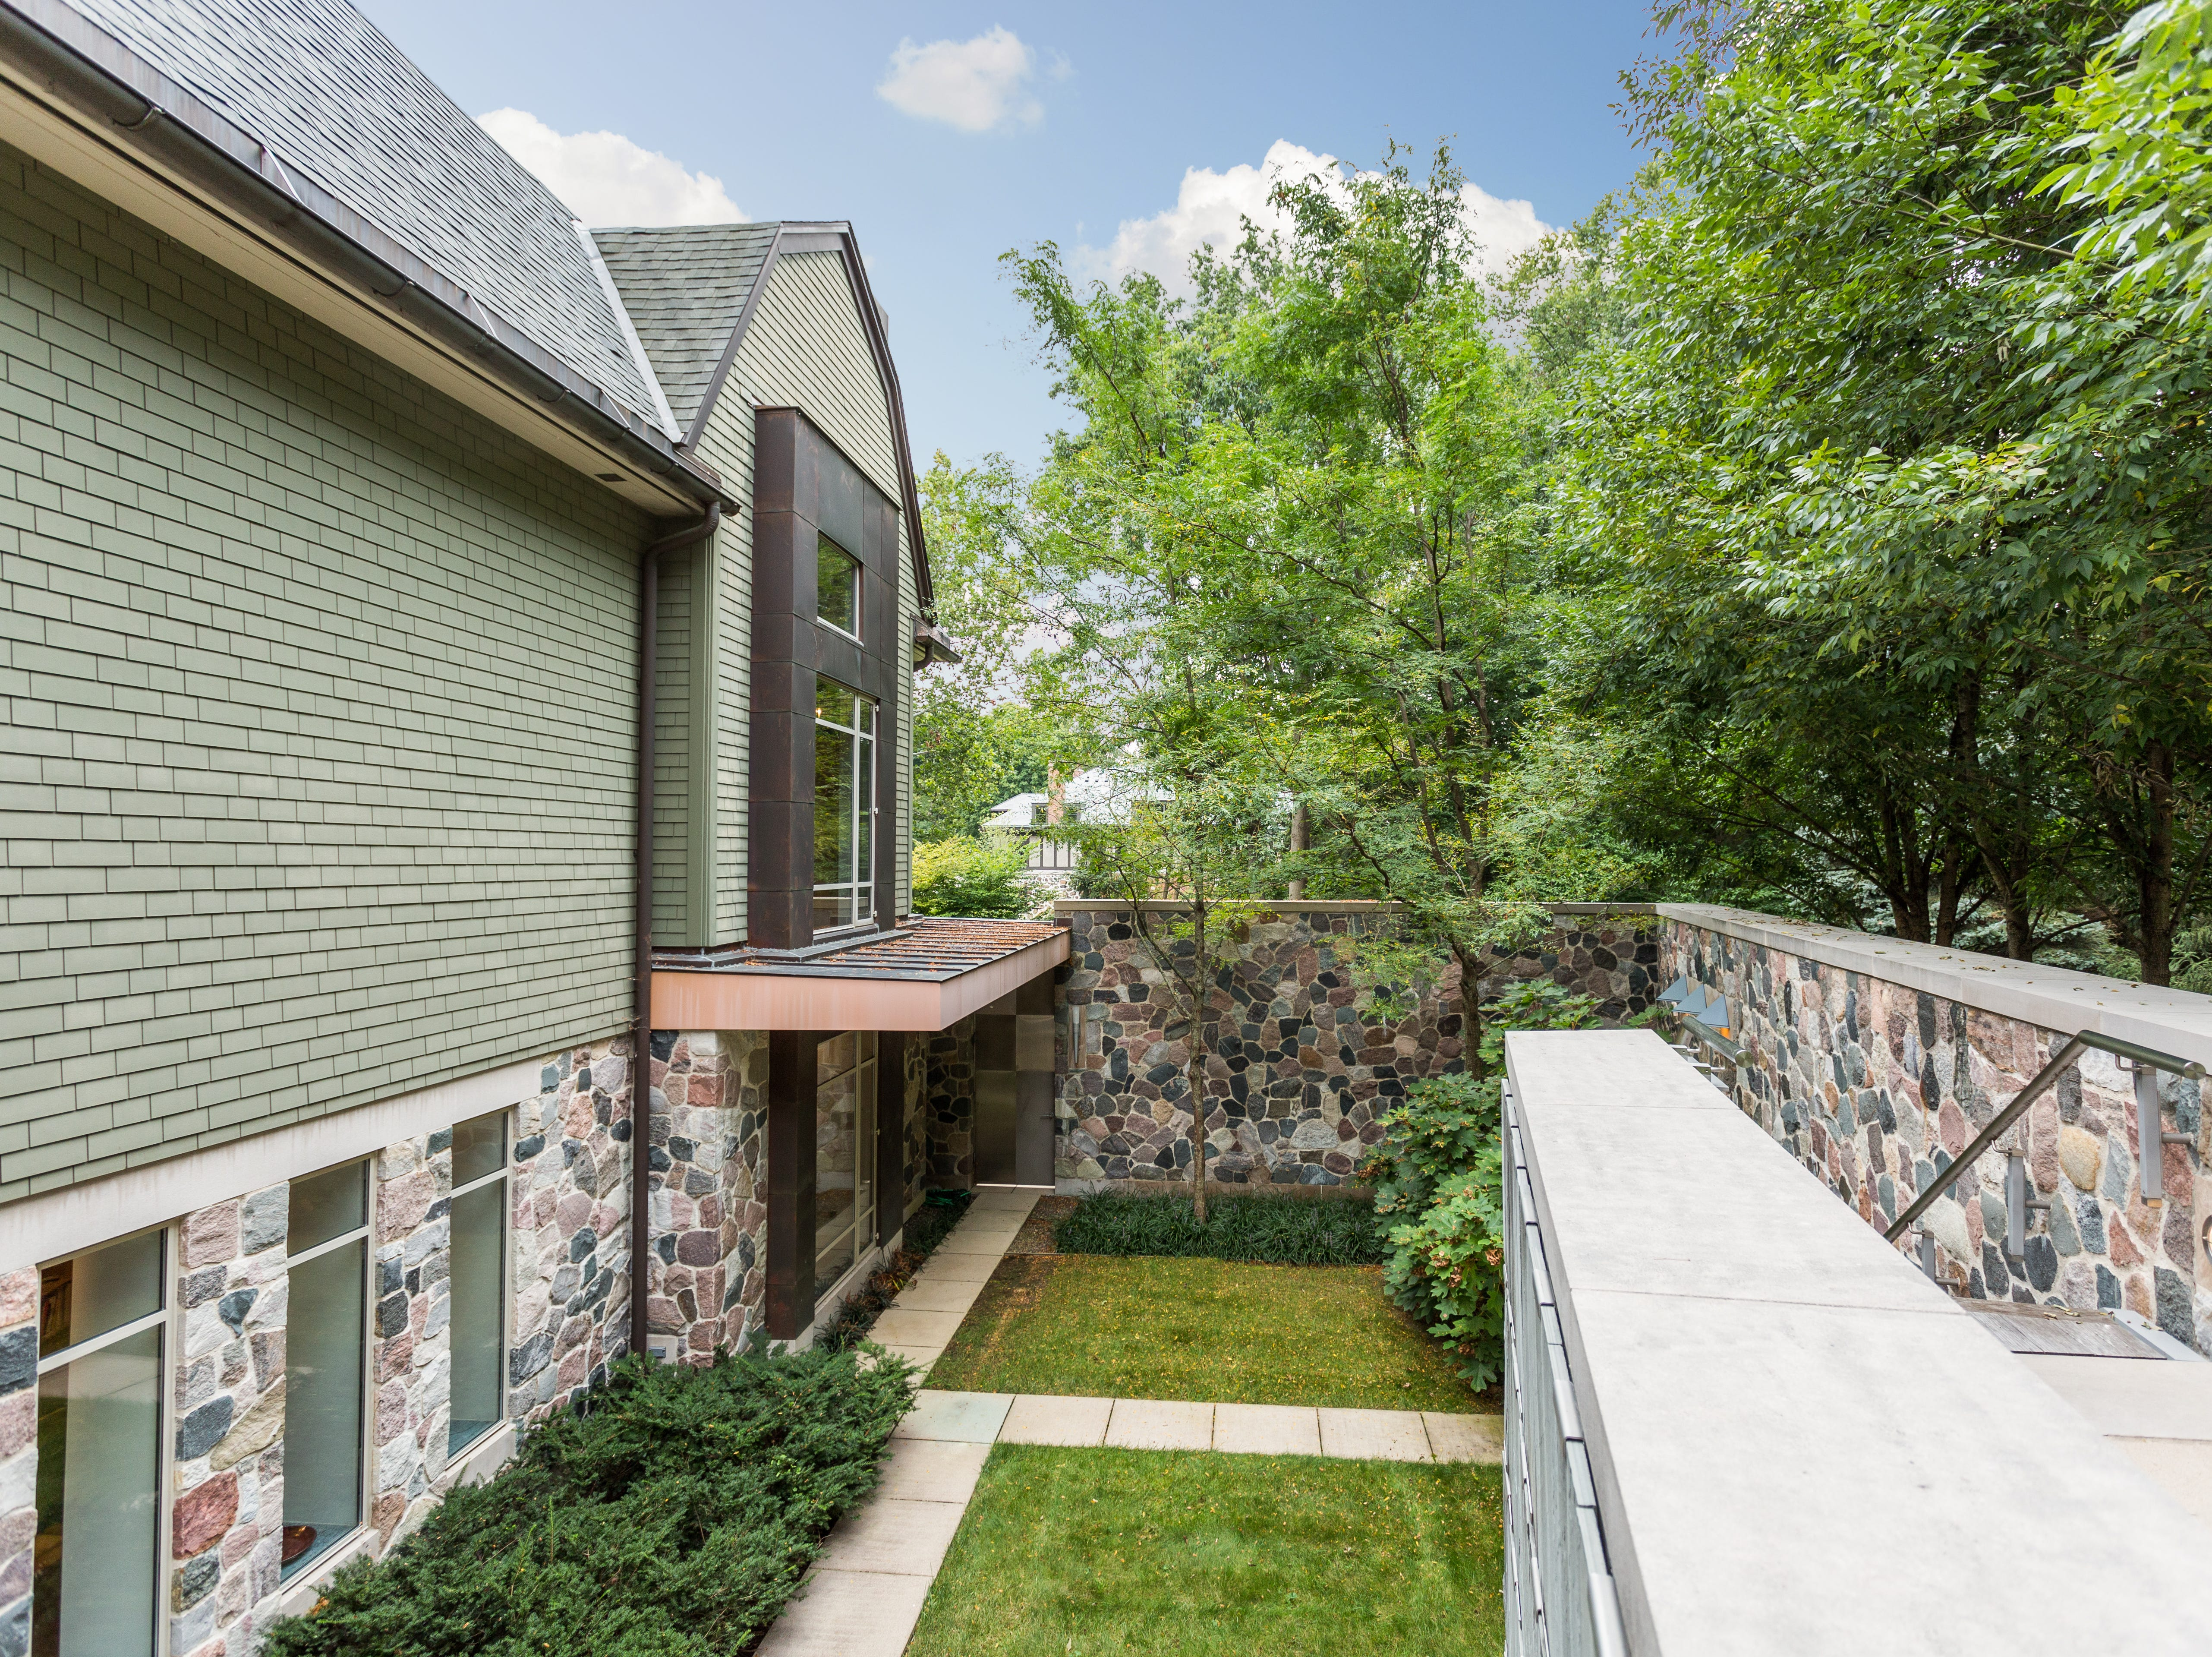 A stone wall and trees afford privacy at the northwest-side home.